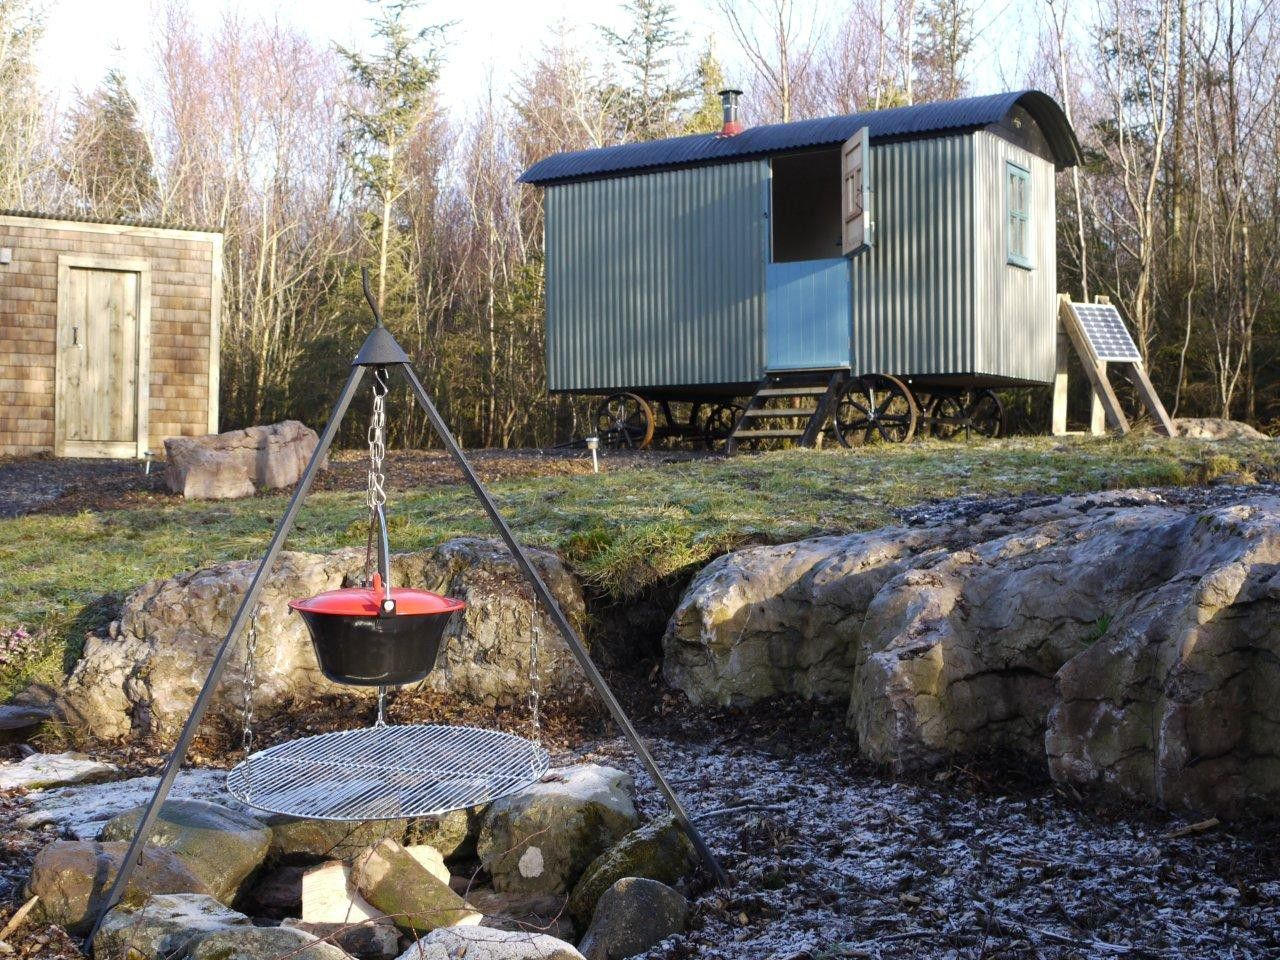 An eco-friendly glampsite high in the hills of the Lake District, amid the trees of a traditional working farm.